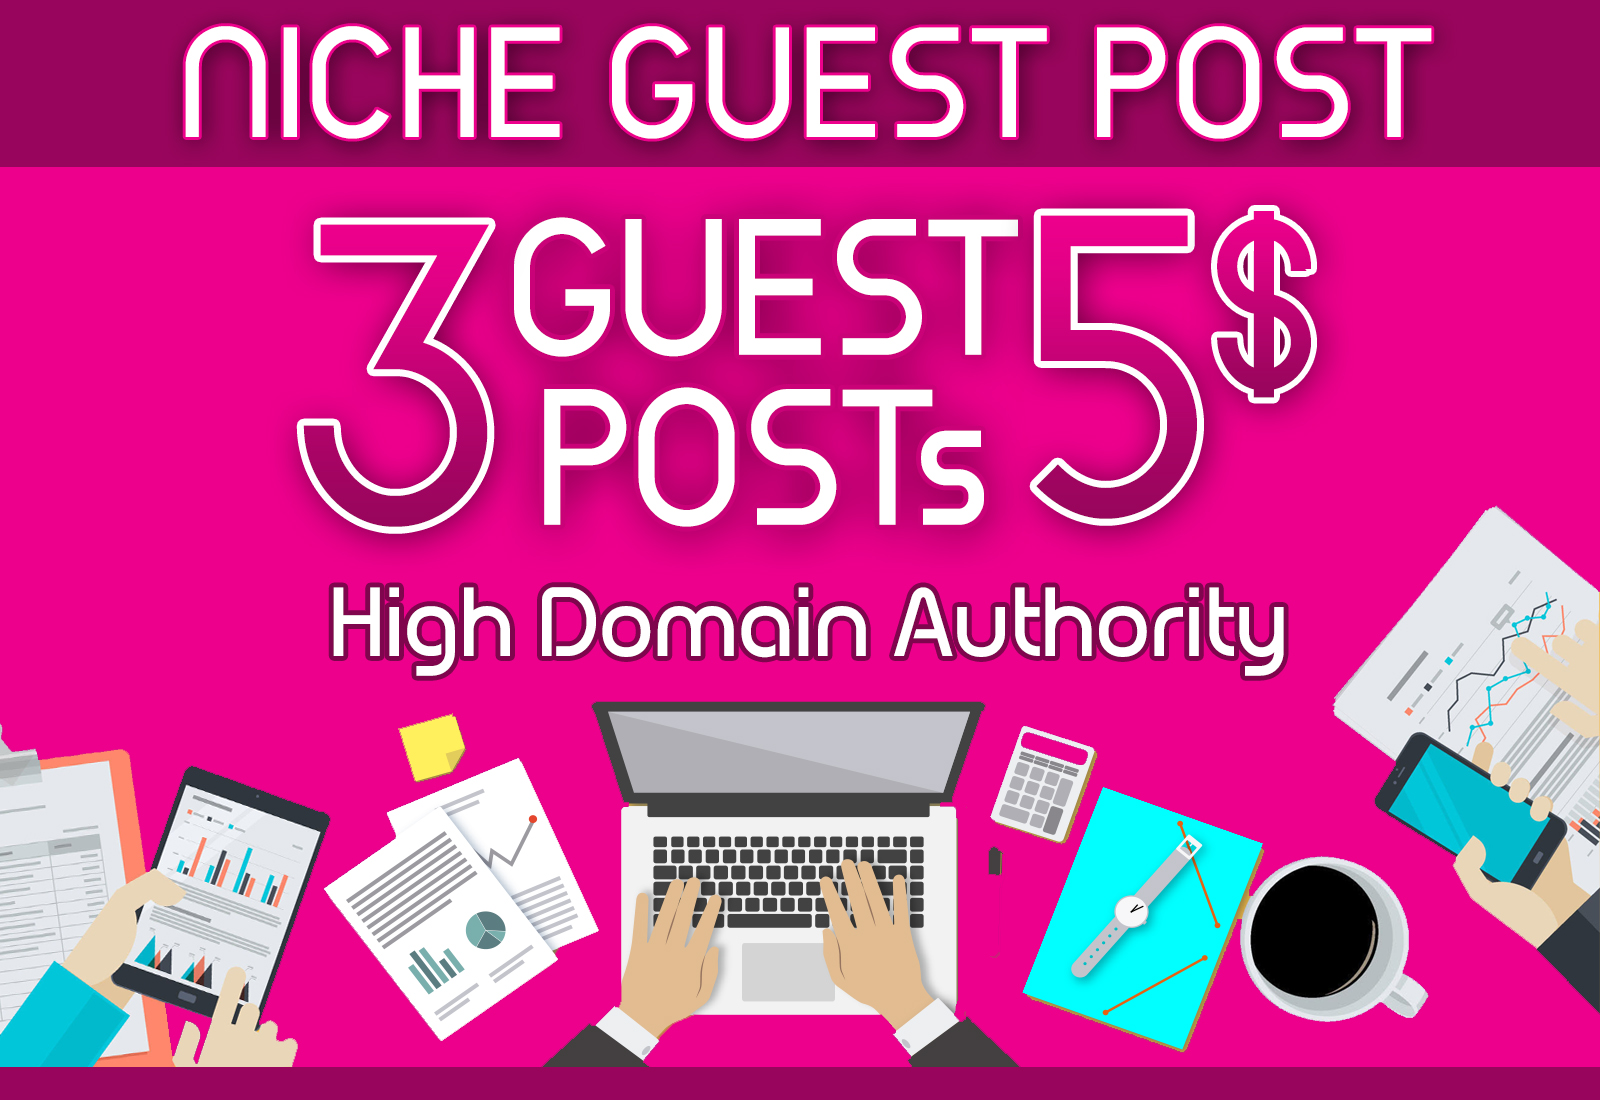 I will write and publish 3 niche guest post on high authority sites